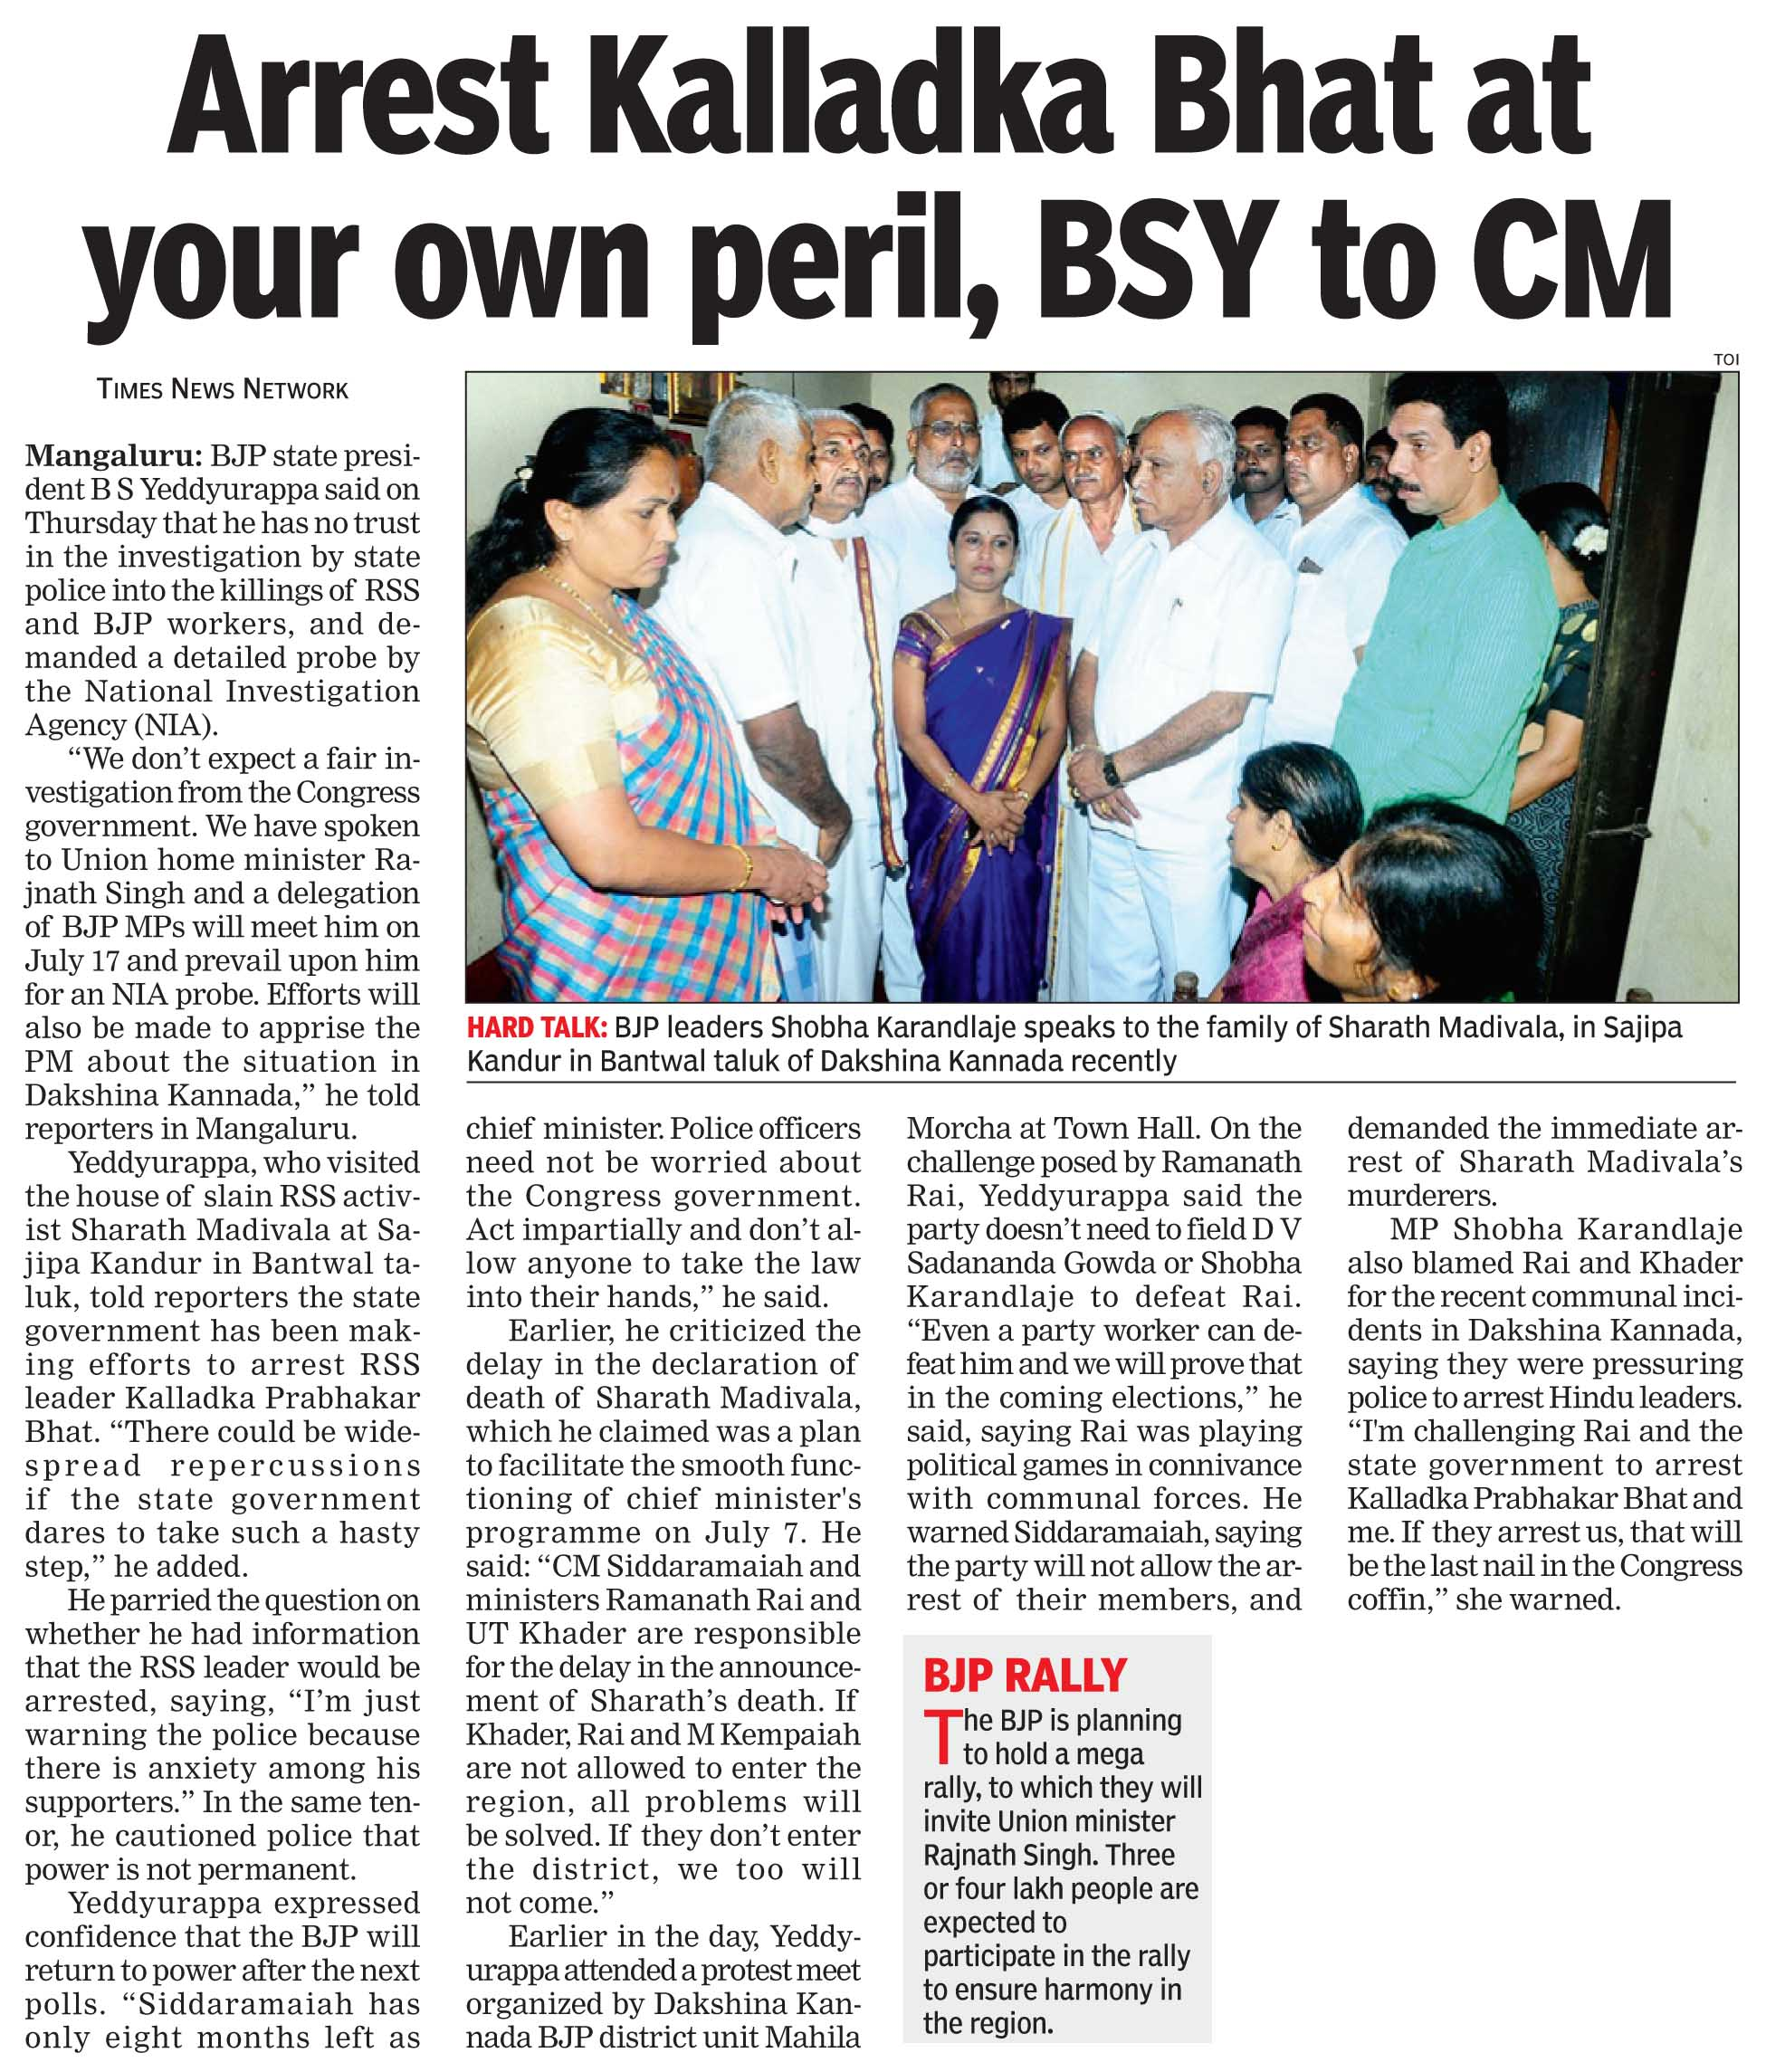 Arrest Kalladka Bhat at your own perl, BSY to CM